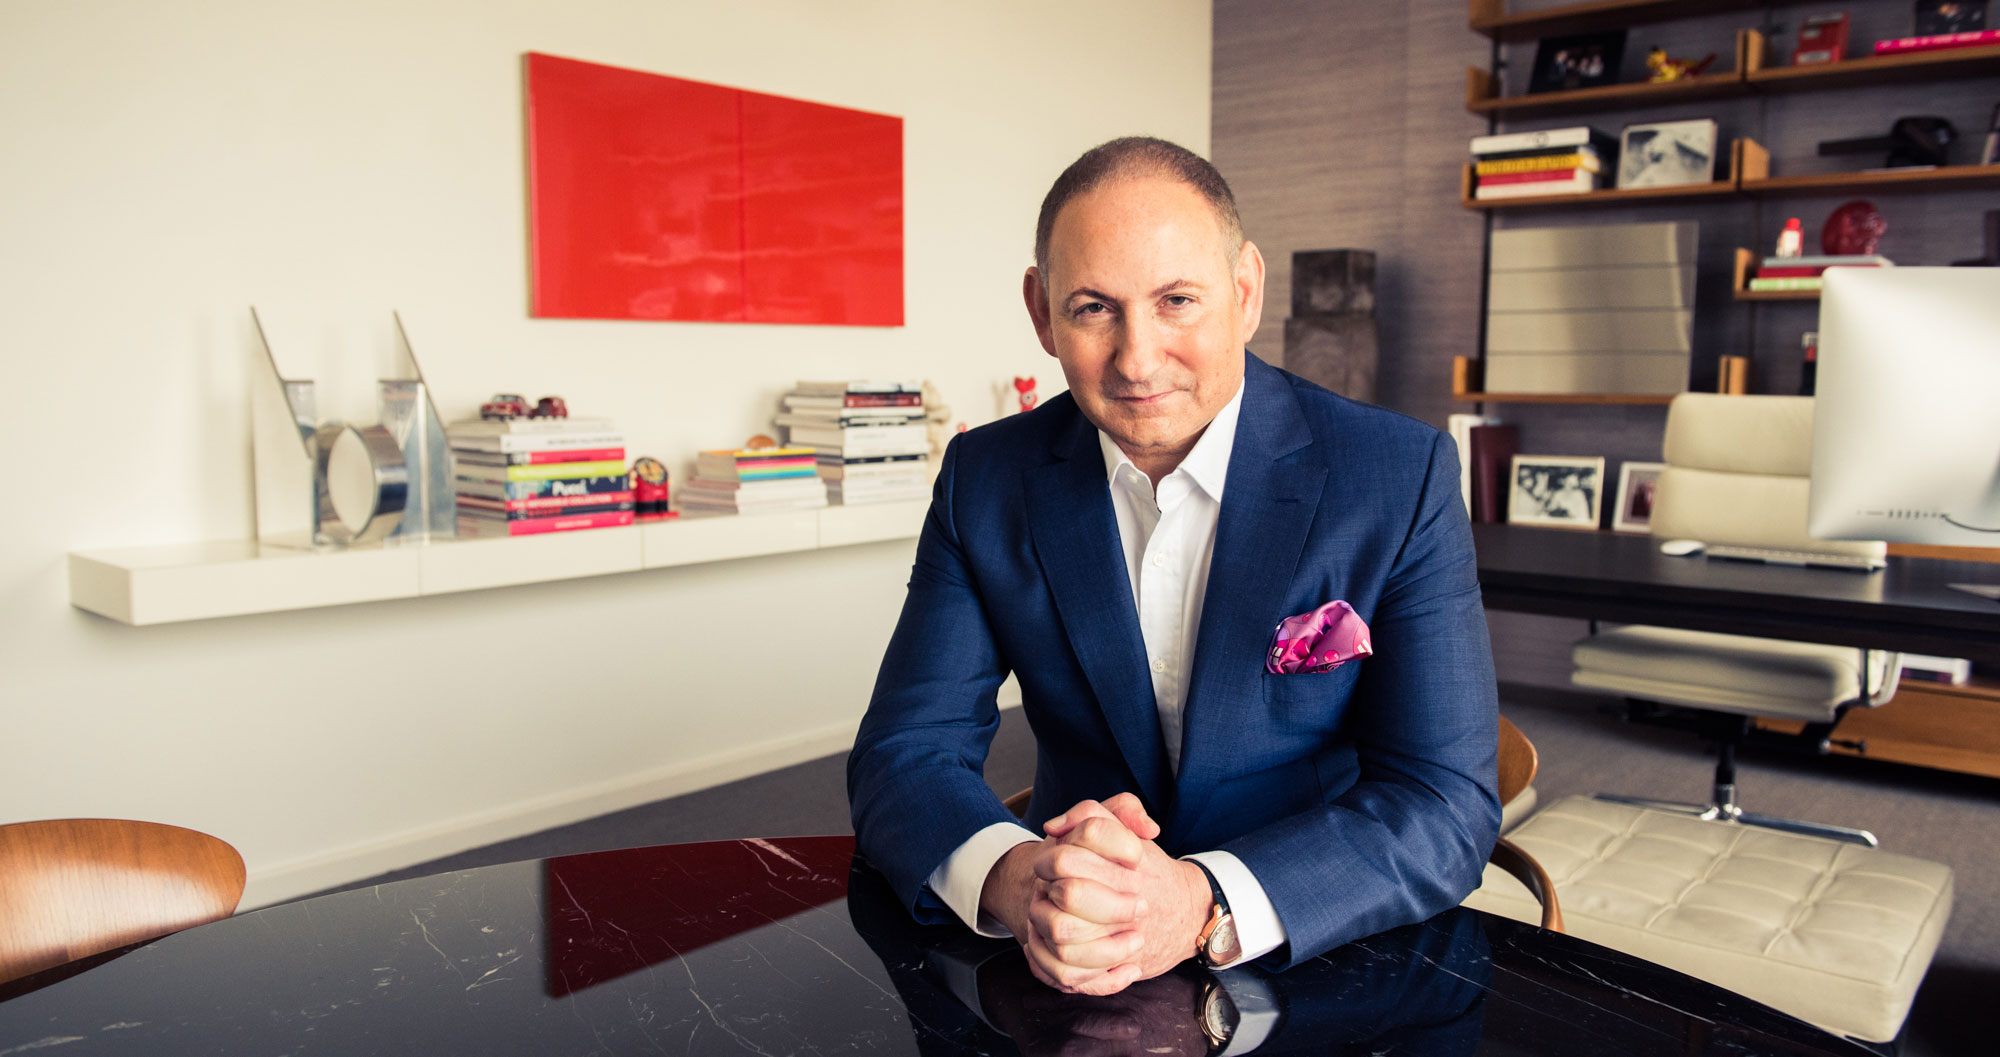 The Man Behind the Biggest Beauty Brands in the World